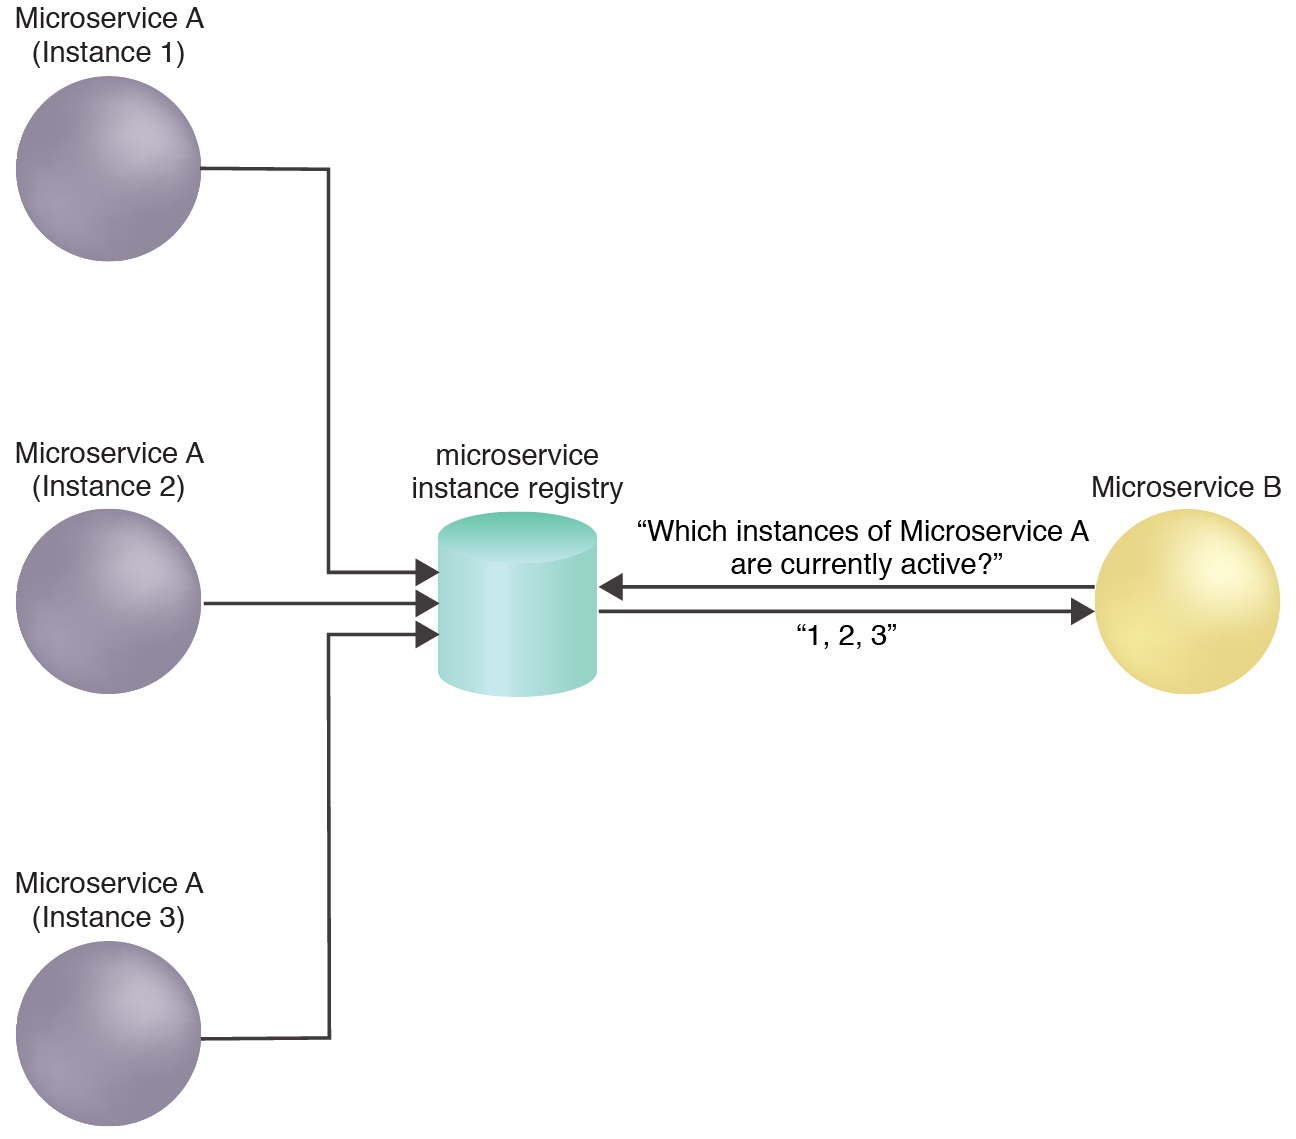 Microservice Instance Registration: Microservice B queries the microservice instance registry to determine whether an instance of Microservice A is active and available.